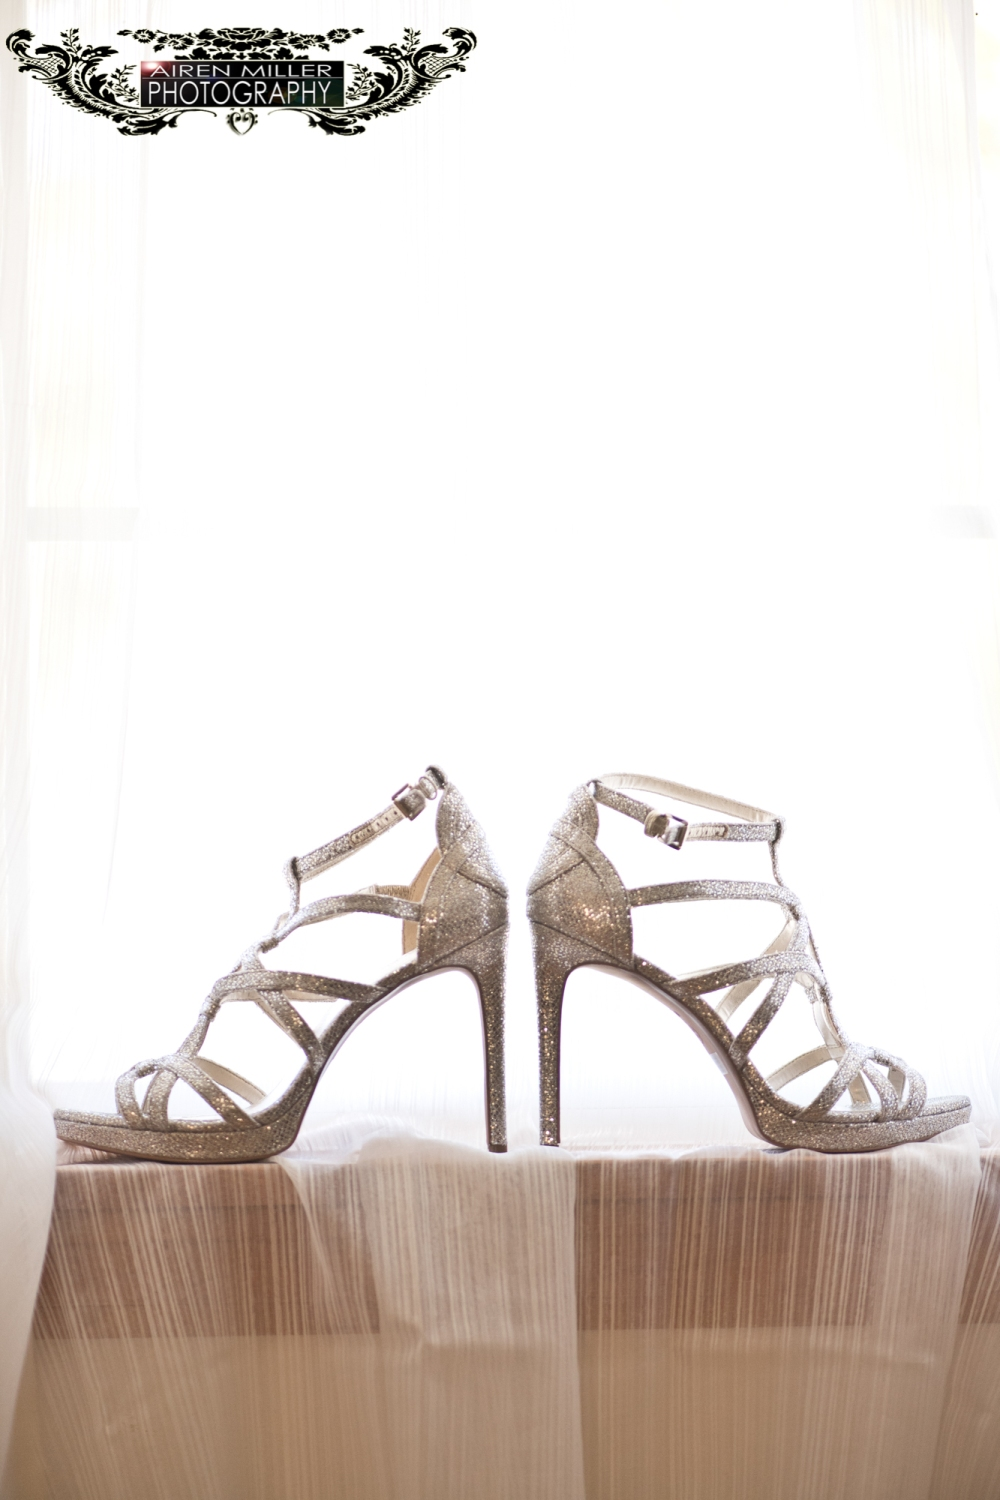 Aria_Prospect_Reviews_ Wedding Shoes